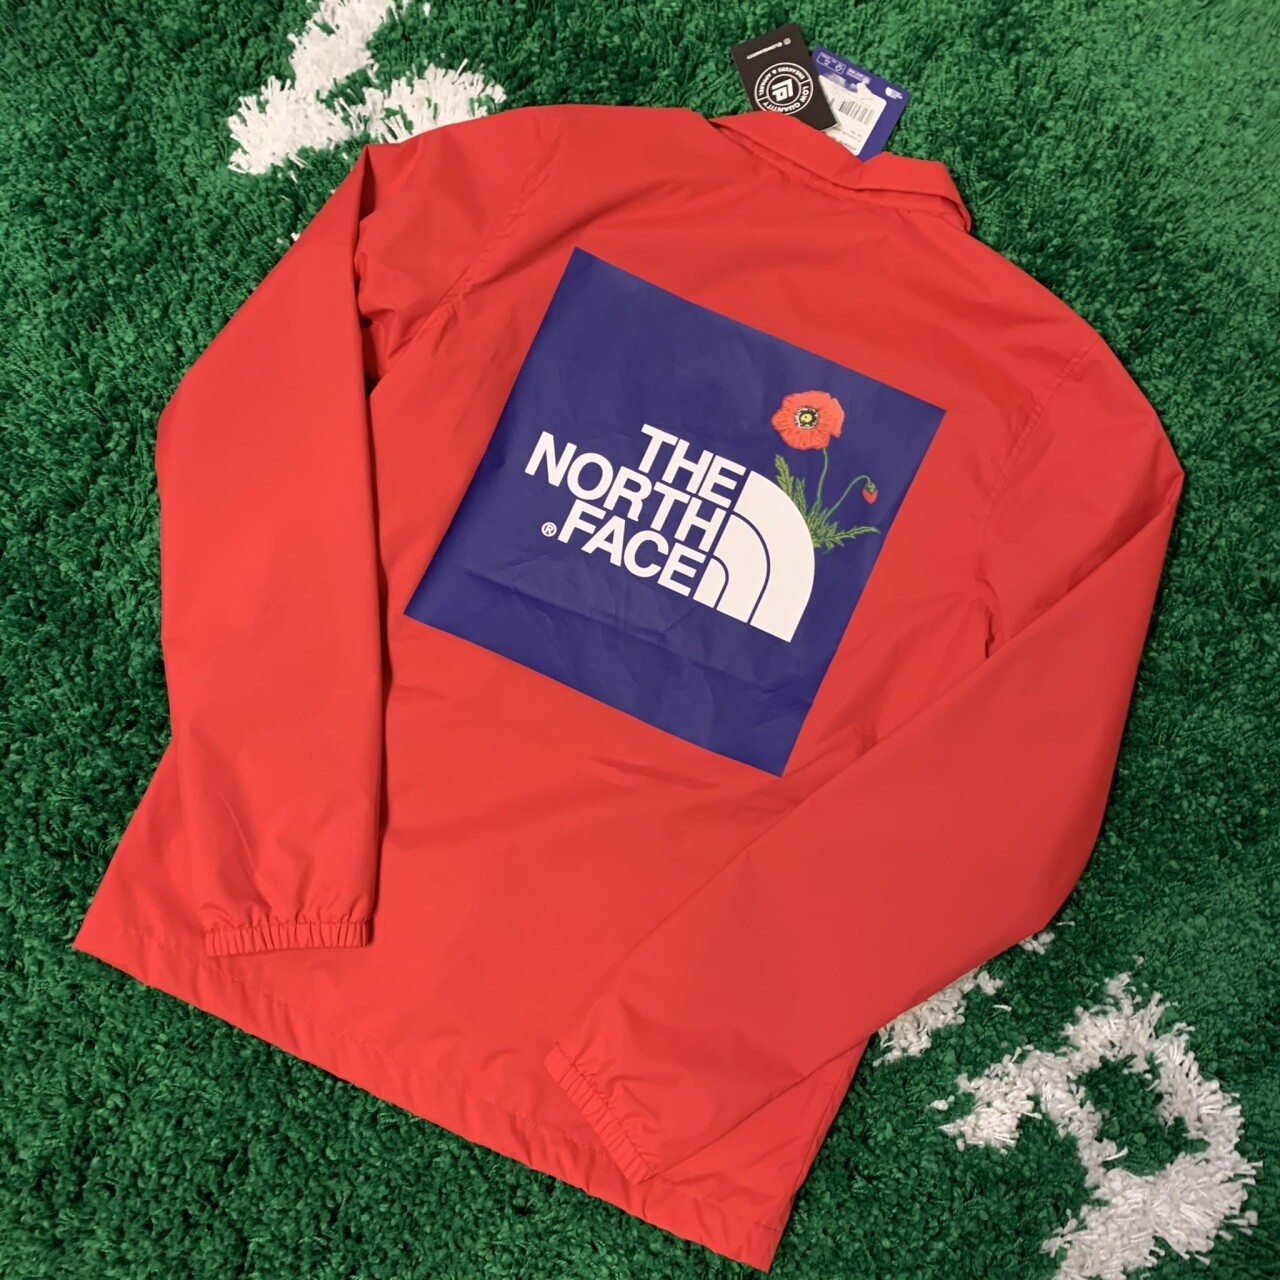 The North Face x Nordstrom Coach Jacket Size XXS